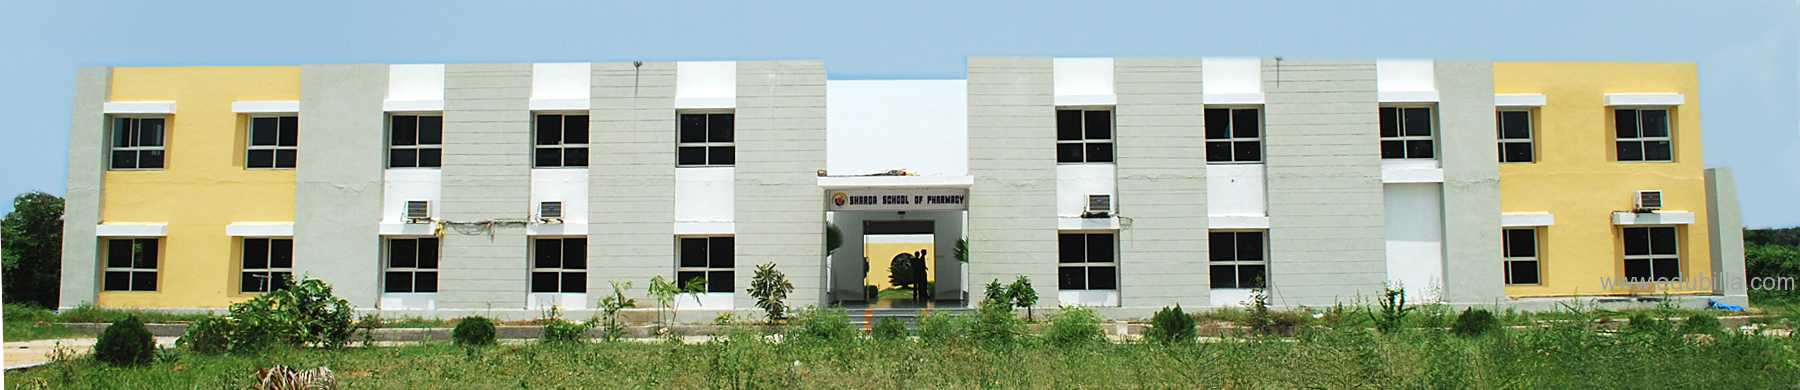 sharda_school_of_pharmacy1.jpg